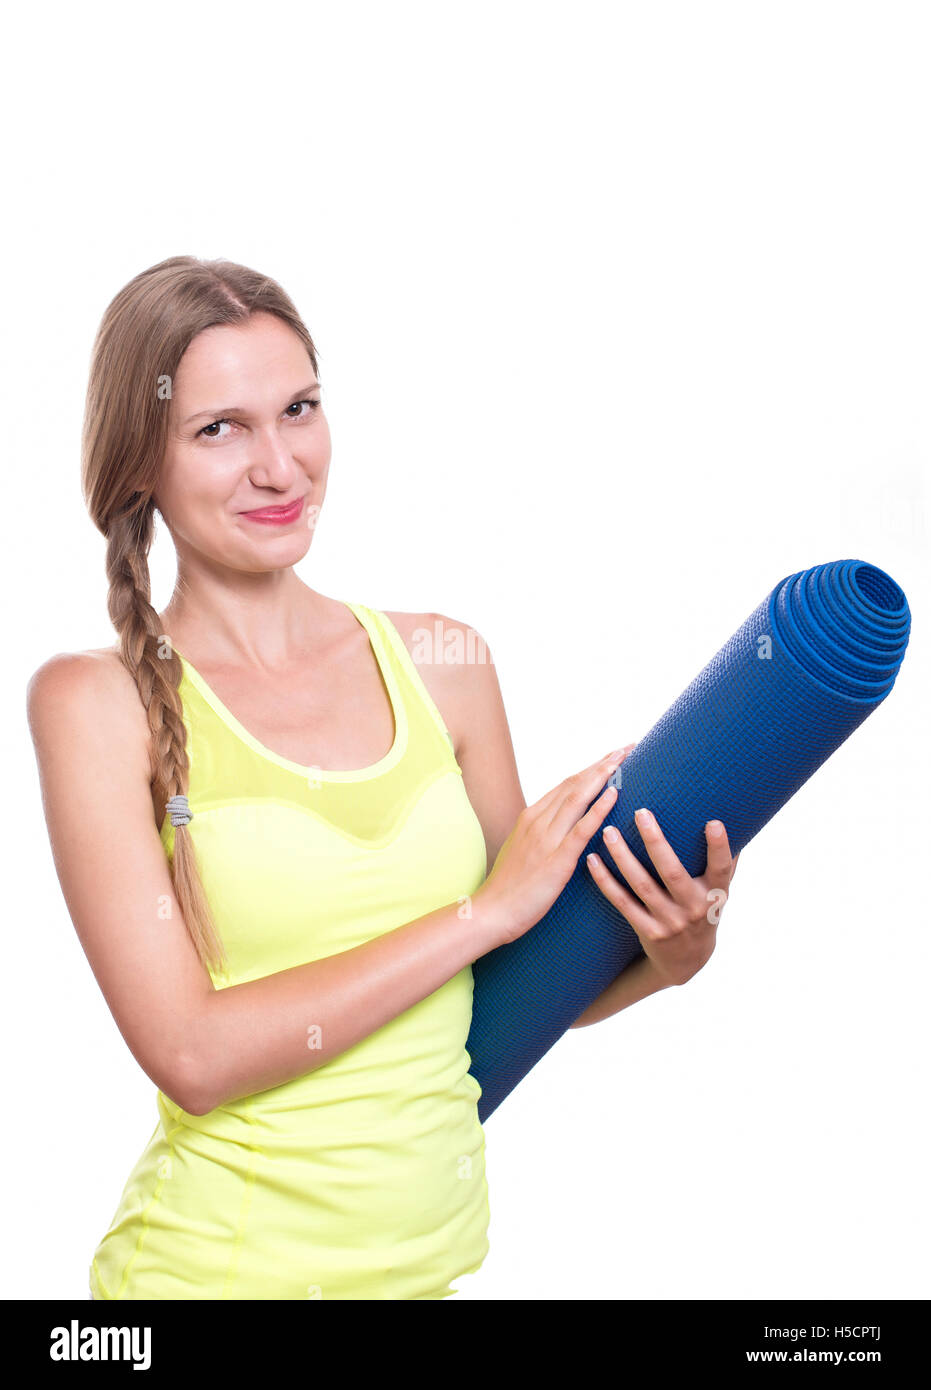 Fitness woman ready for workout, holding yoga mat isolated on white background Stock Photo